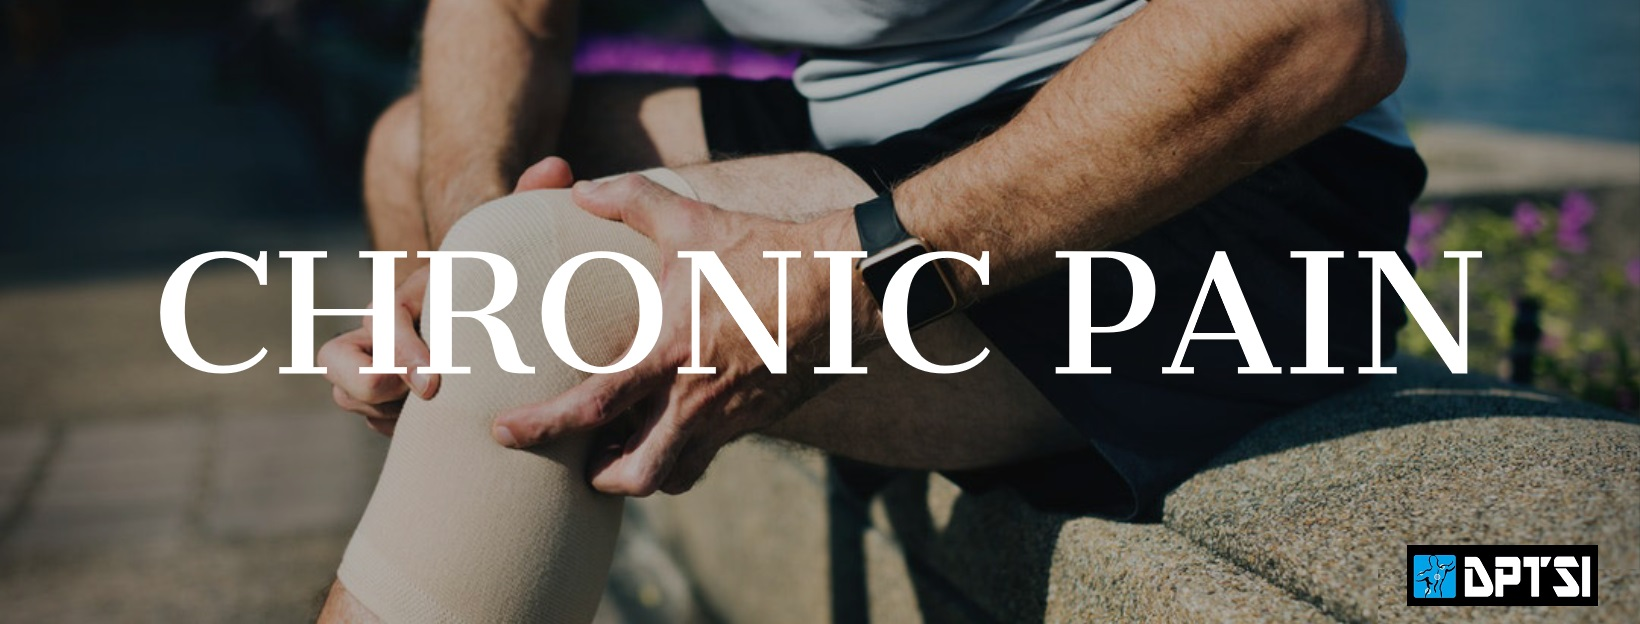 image-752081-Chronic_Pain_Cover_Photo.jpg